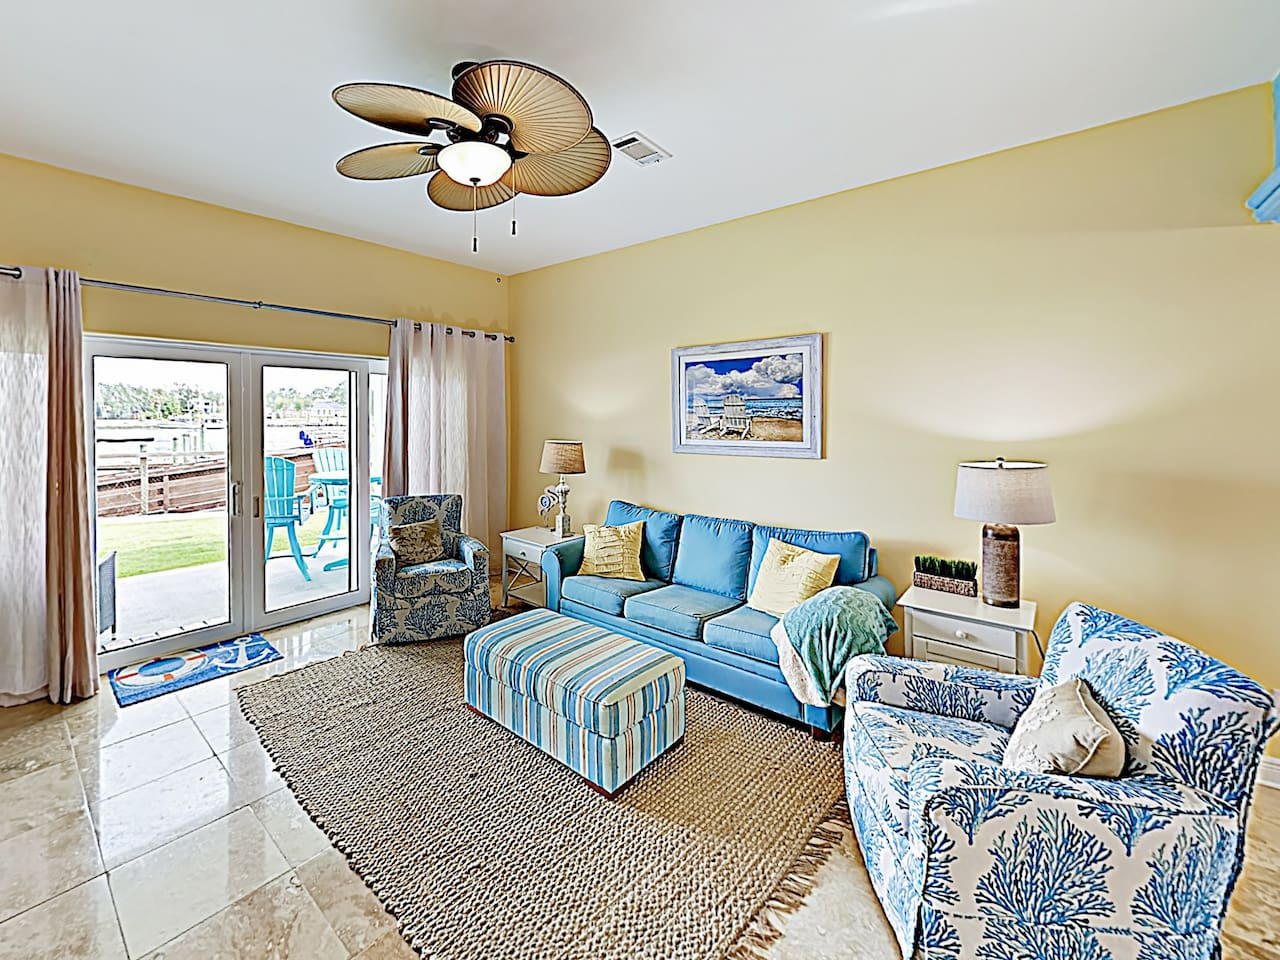 Welcome to Banana Bay Townhomes! This townhouse is professionally managed by TurnKey Vacation Rentals.